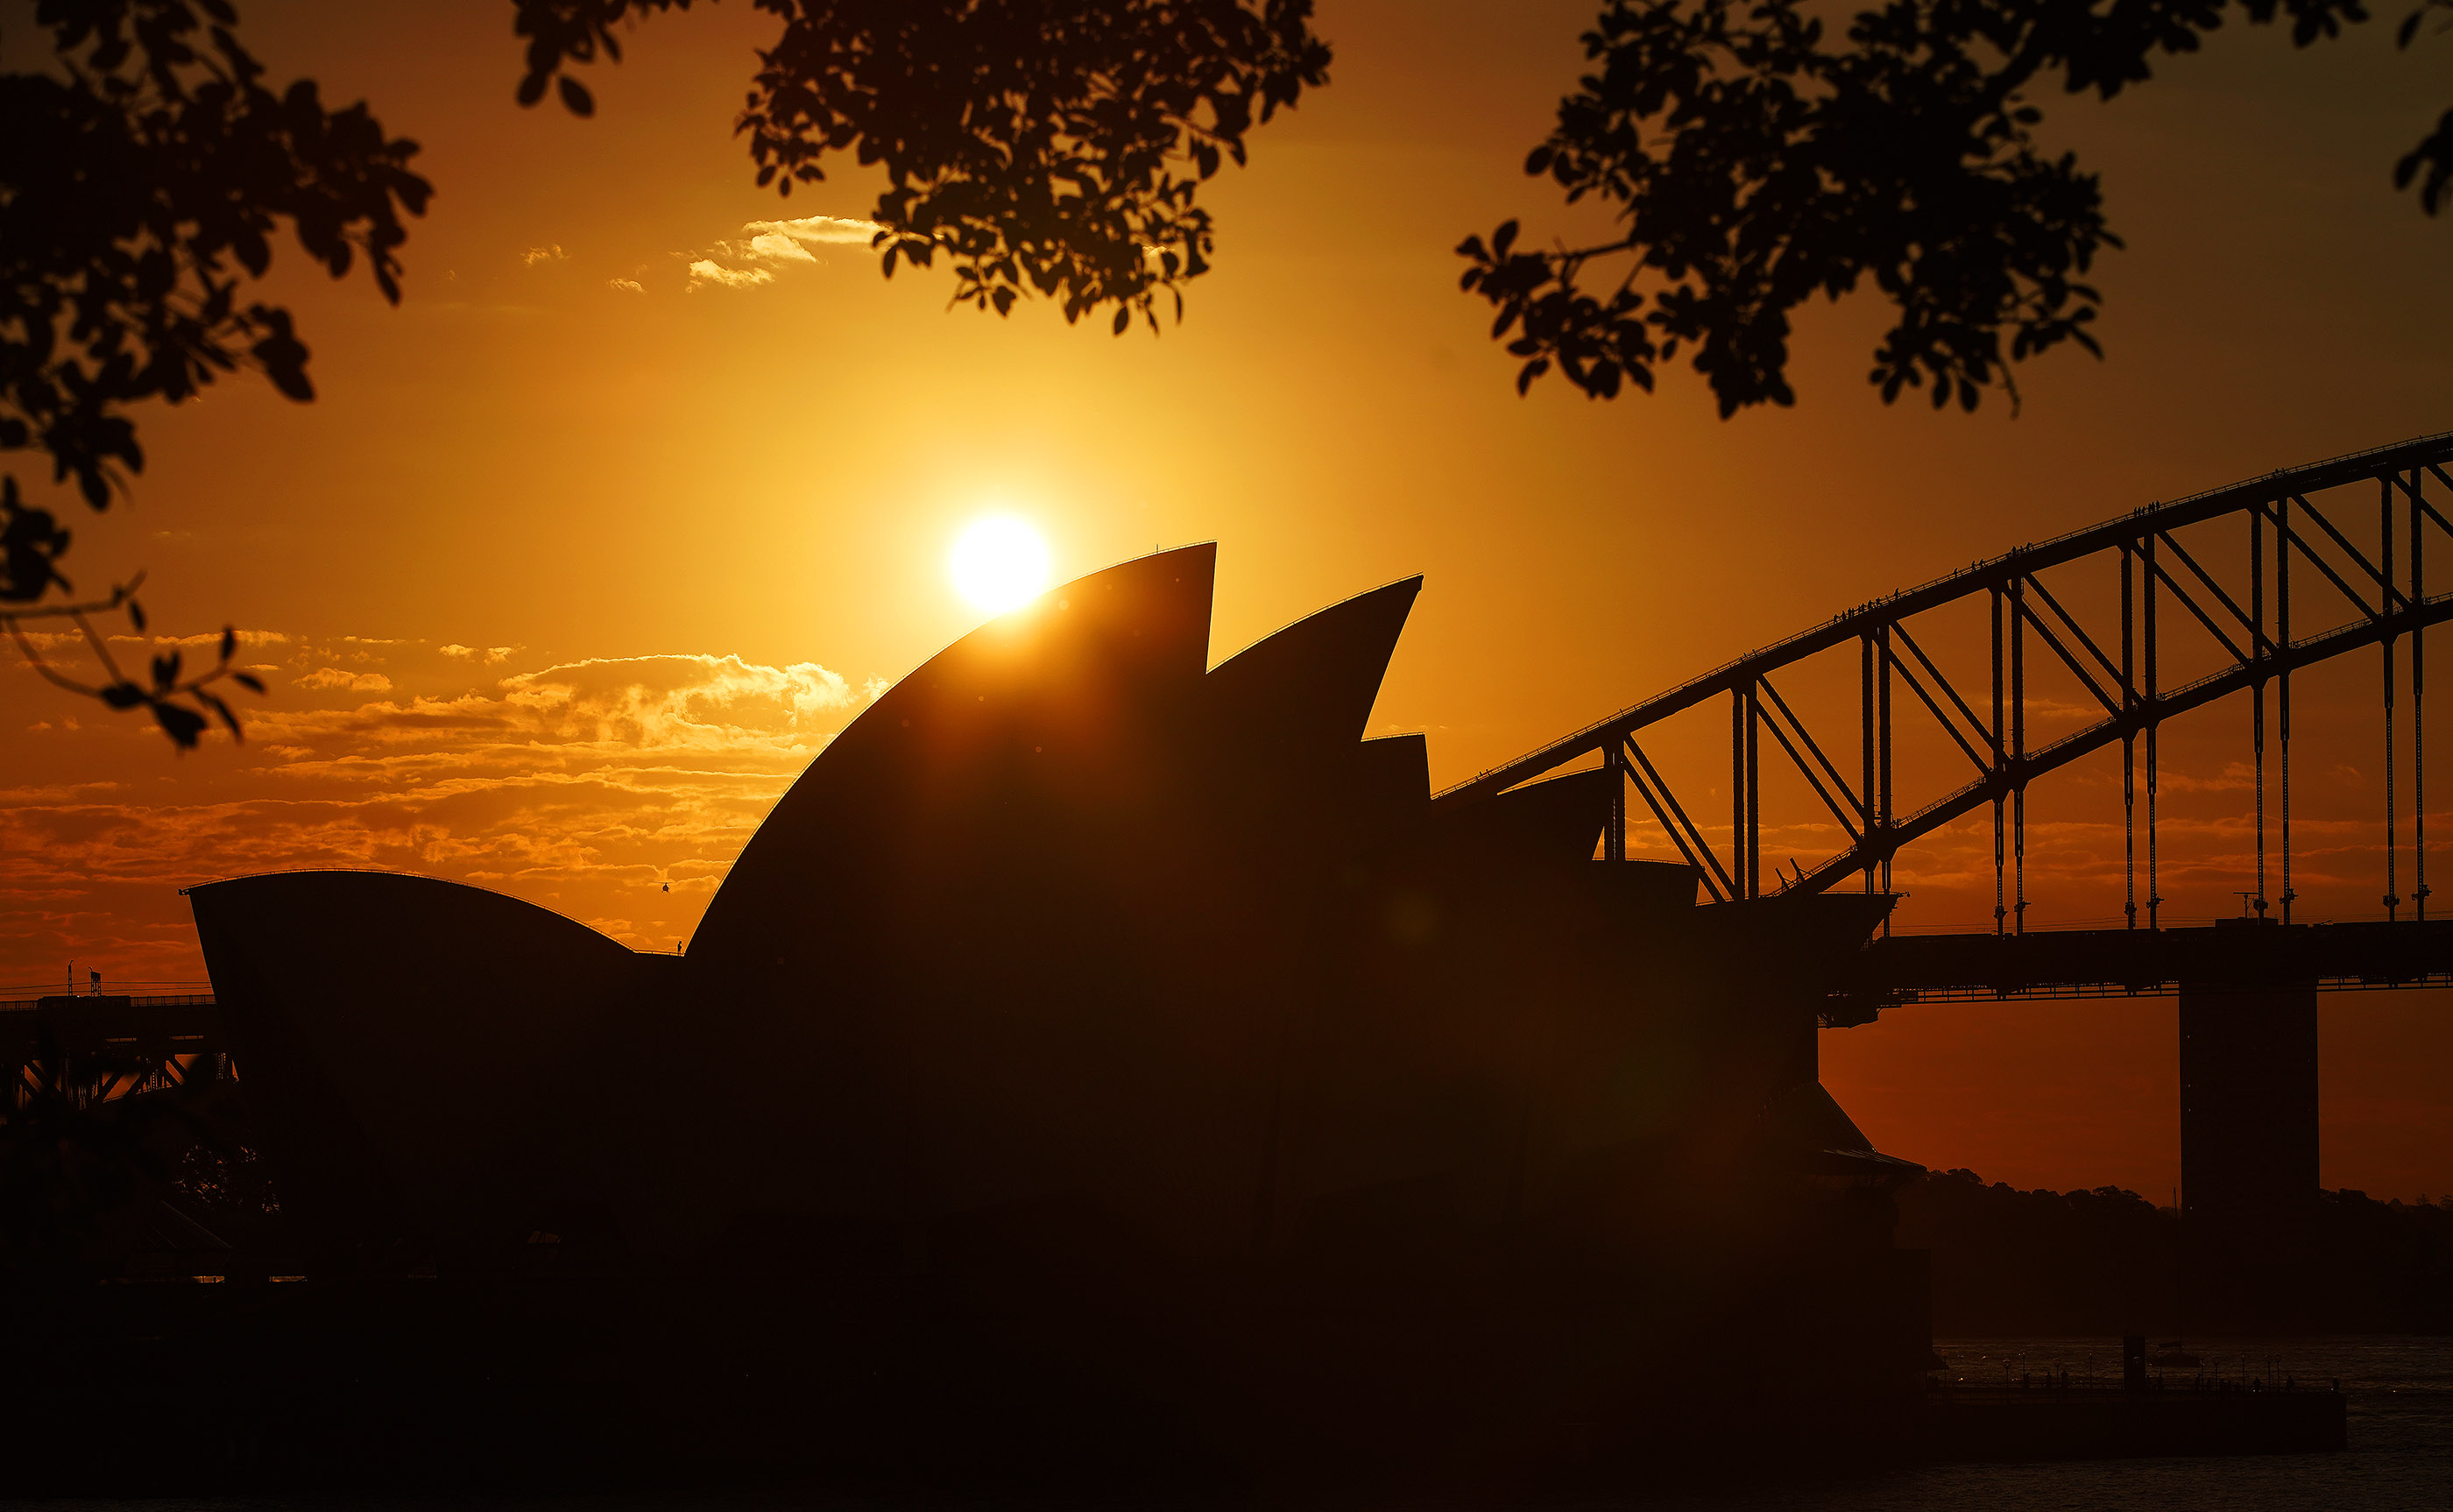 The iconic Sydney Harbor Bridge and Sydney Opera House are highlighted by the evening sunset on May 17, 2019 in Sydney, Australia. President Russell M. Nelson, with his wife Sister Wendy Nelson, will visit the city on his nine-day, seven-nation Pacific Ministry Tour.